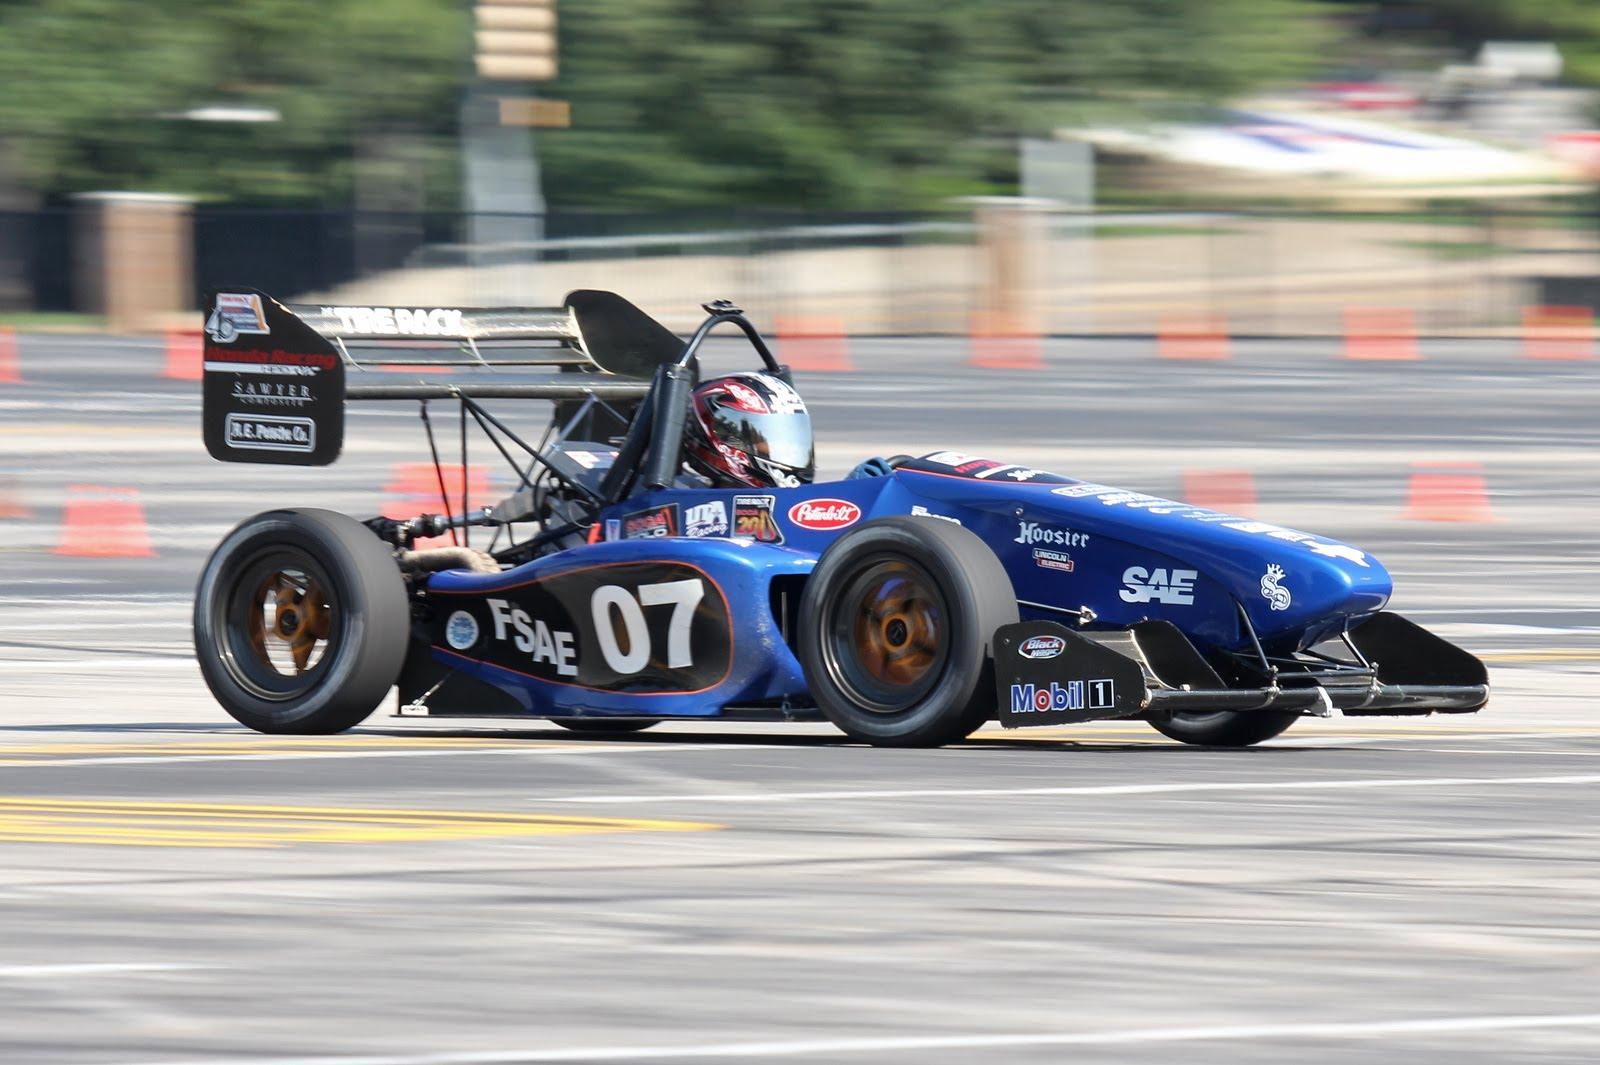 Formula Cars: 6 Fresh Engineering Design Competitions For College